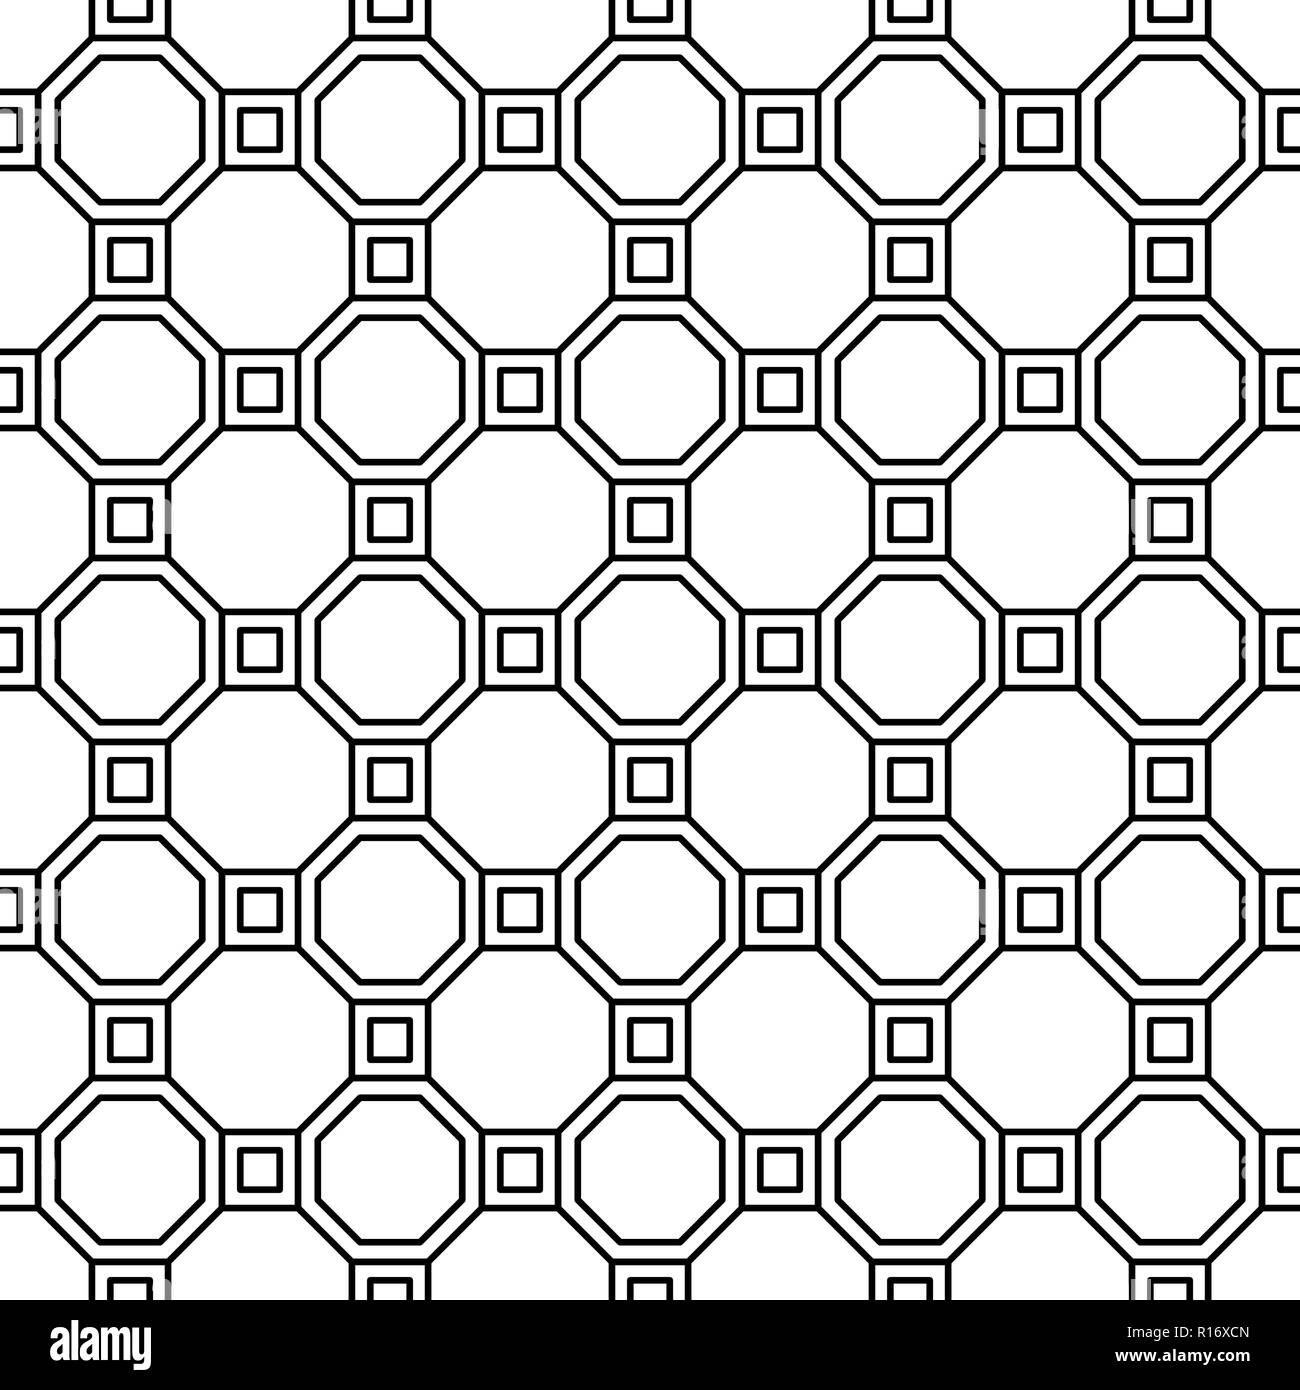 2a4a7fa4c323 Vector seamless geometric pattern. Classic Chinese ancient ornament - Stock  Image